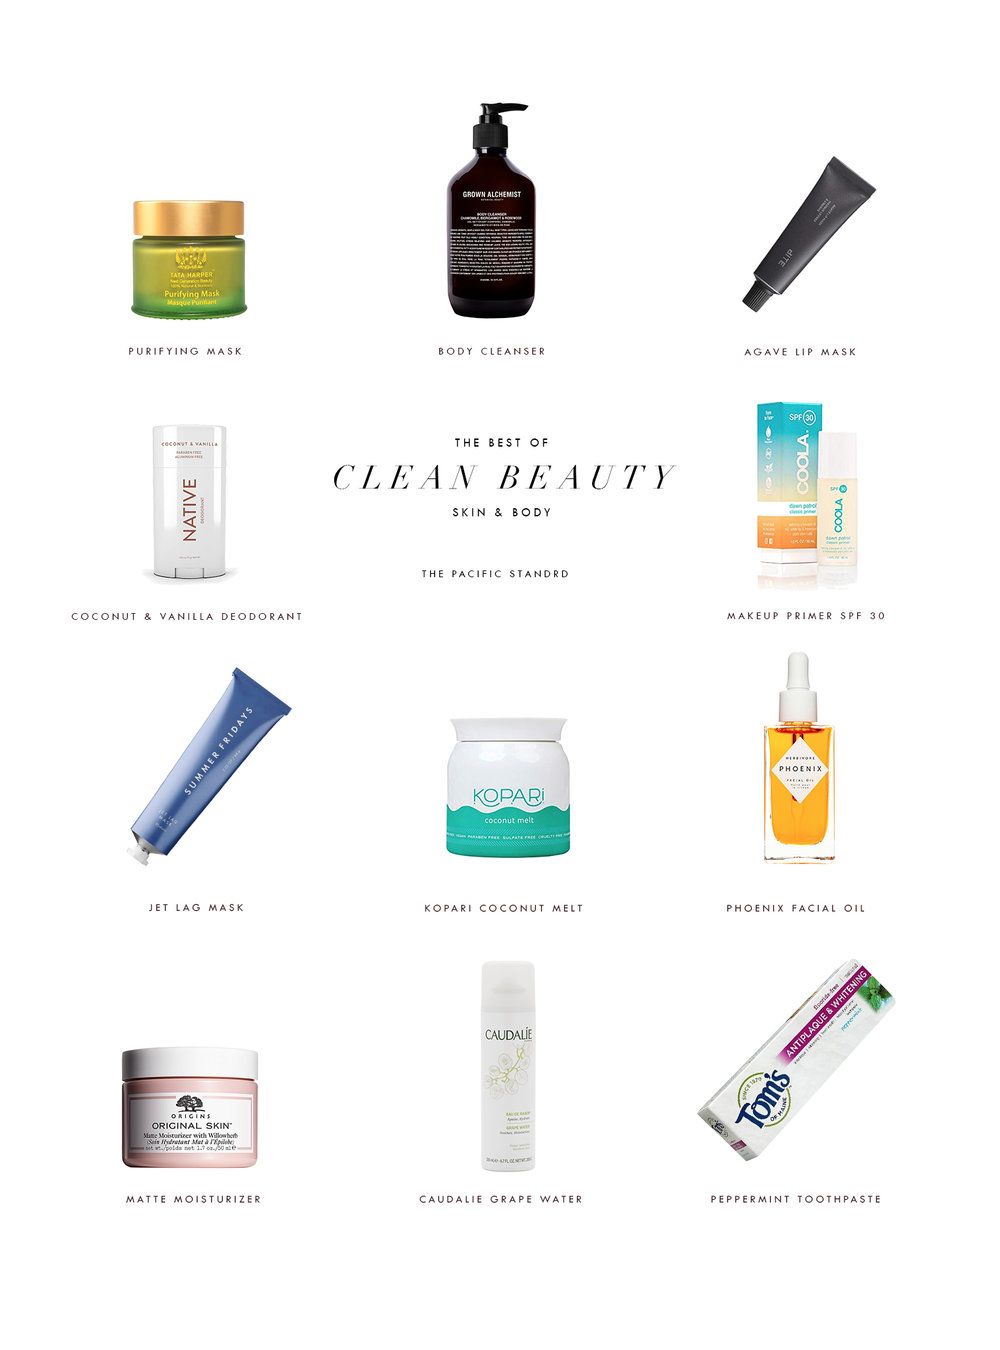 Best of Clean Beauty - Skin & Body Care Products via. The Pacific Standard   www.thepacficstandard.com